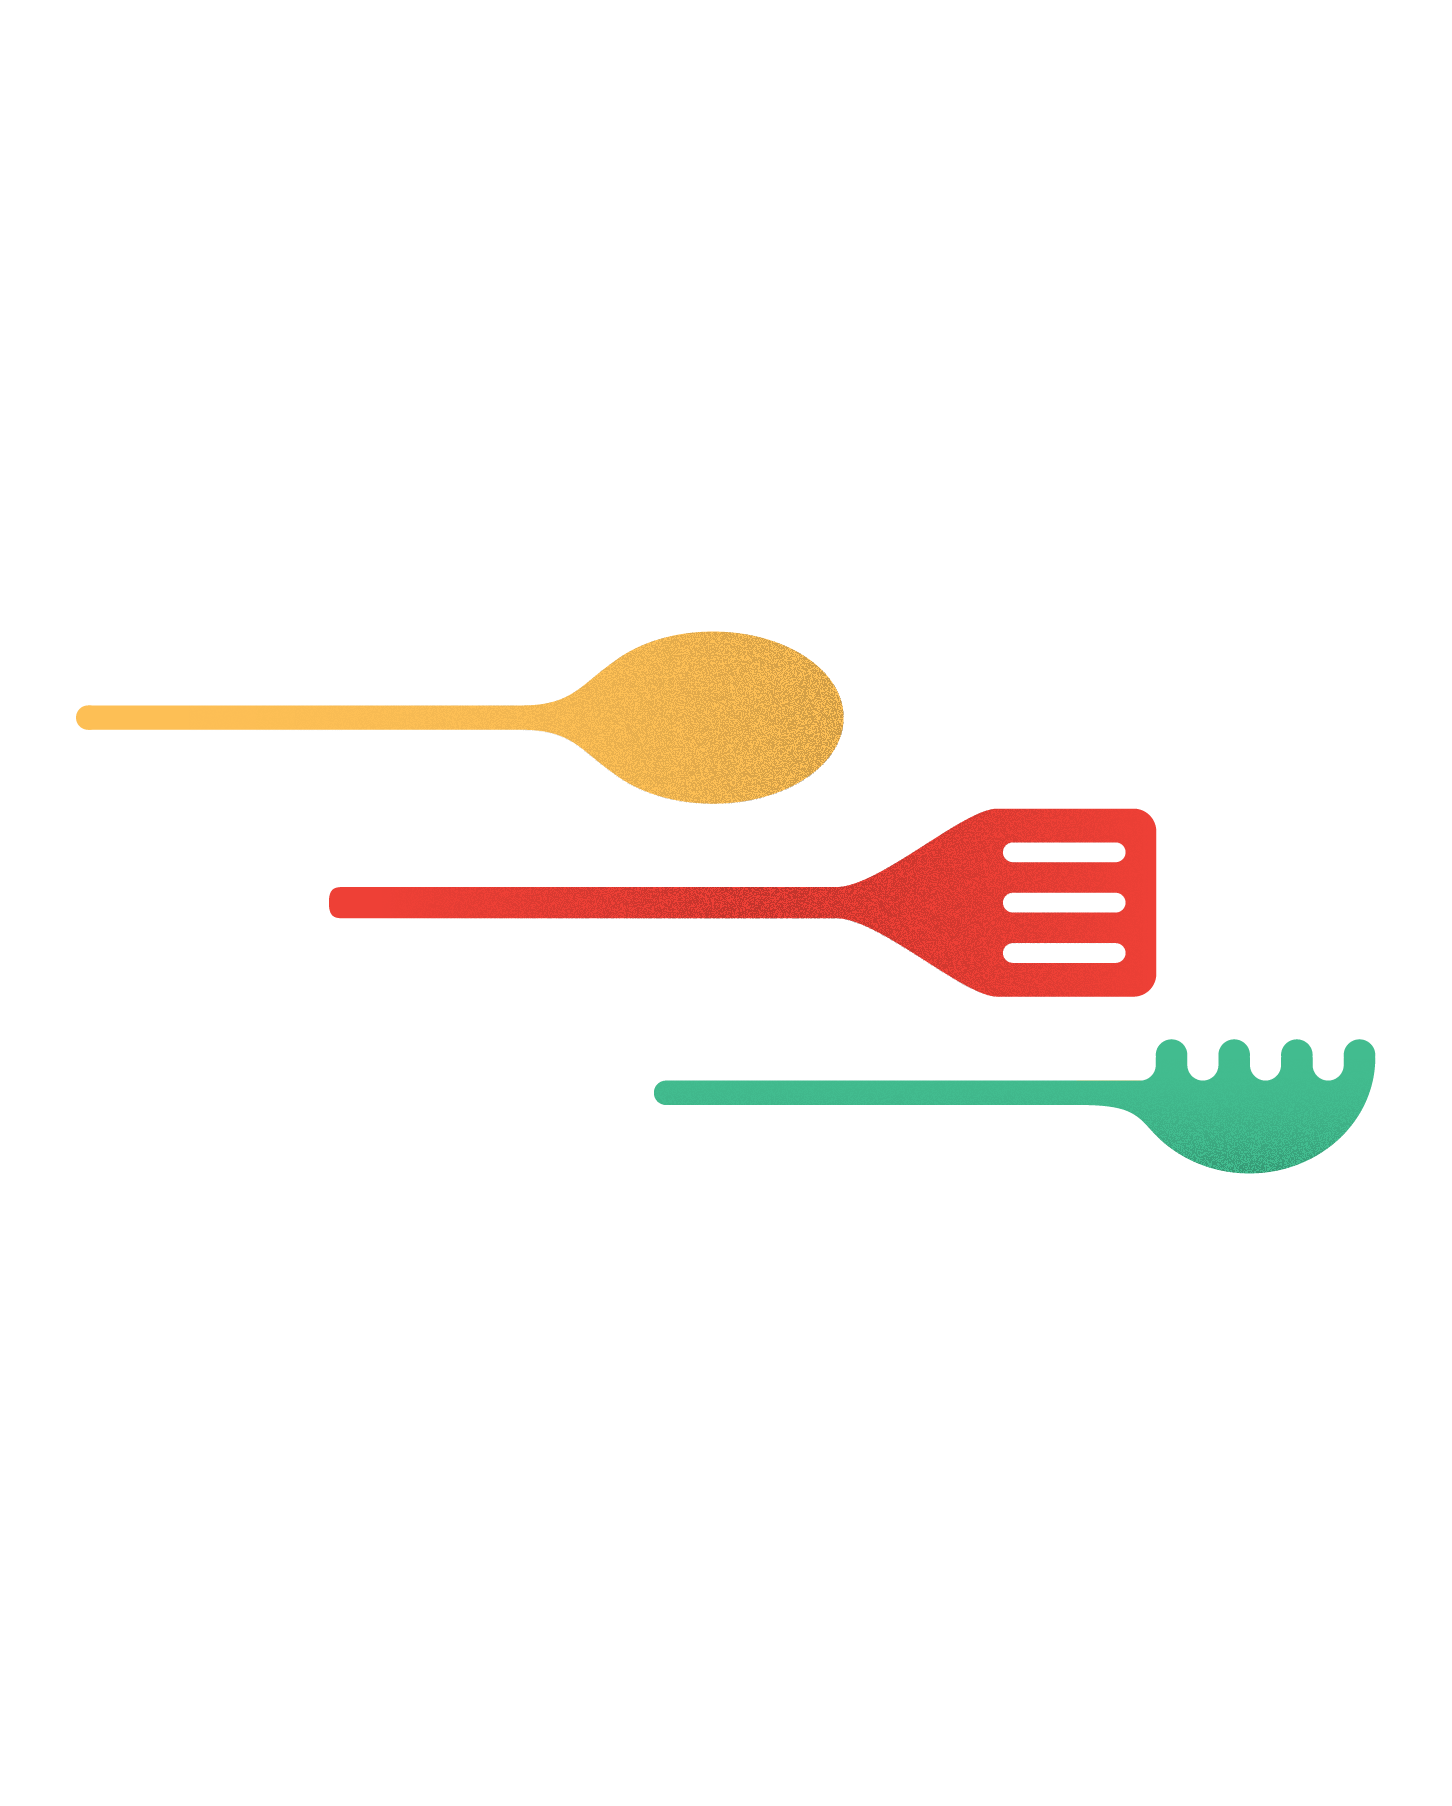 Illustration of cooking utensils